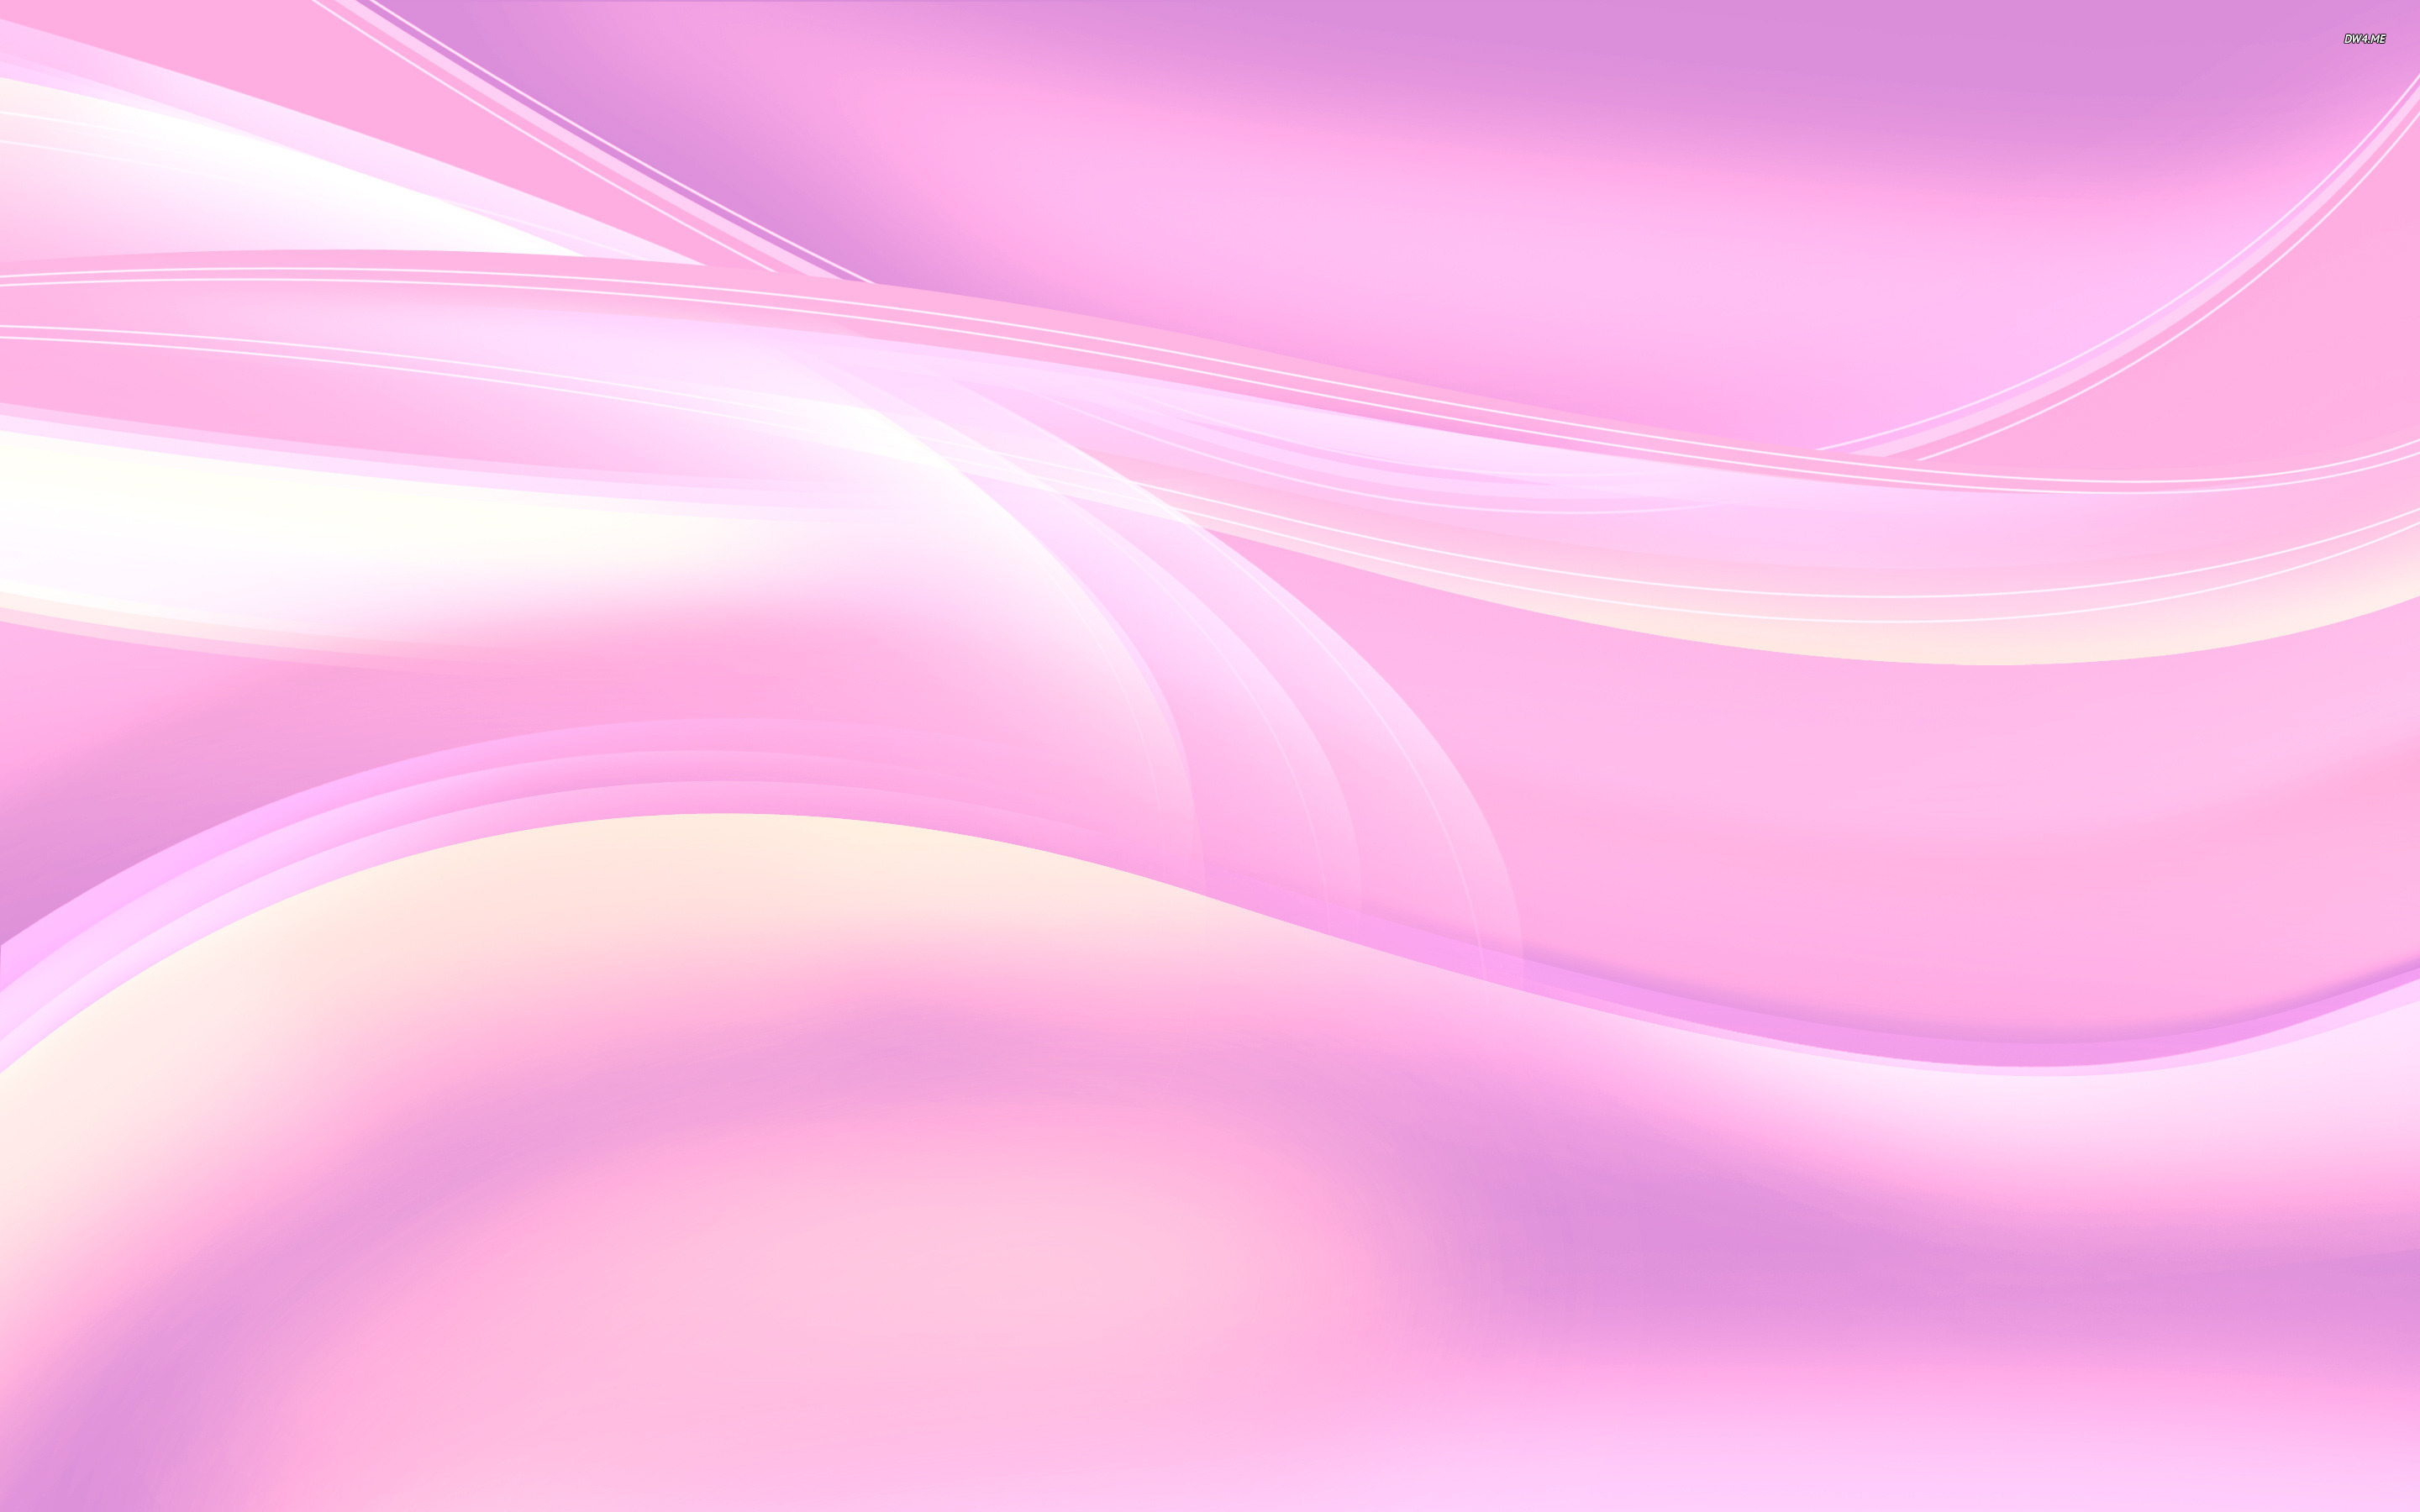 pink and white background - HD2880×1800